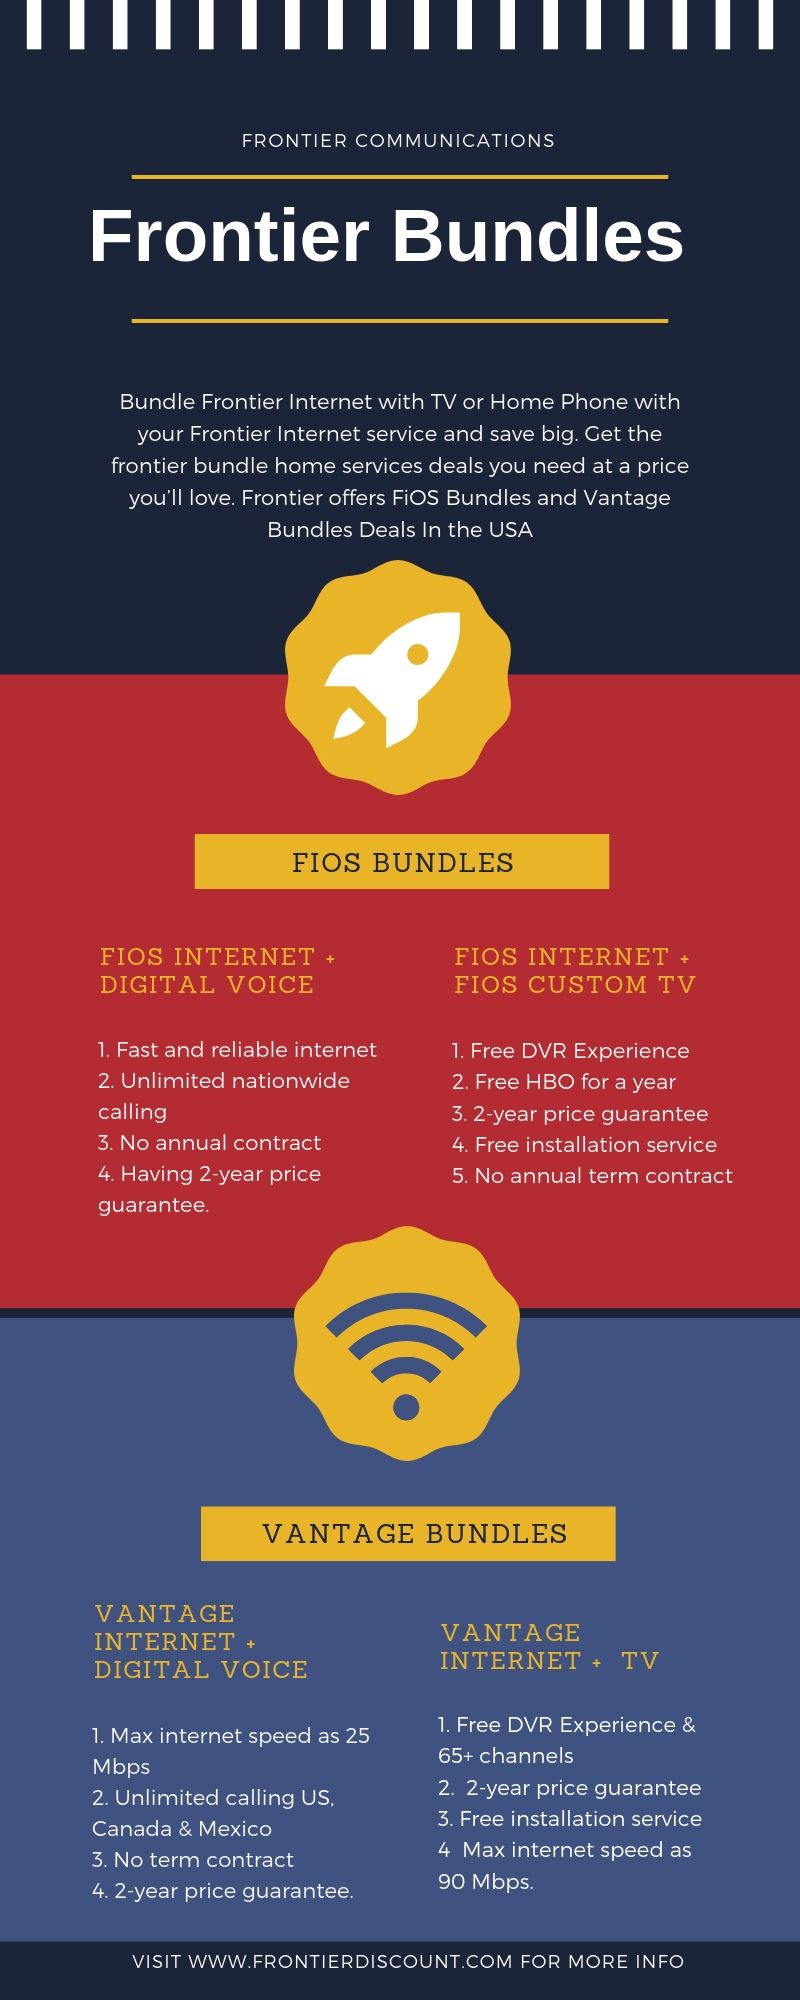 Bundle Frontier with TV or Home Phone with your